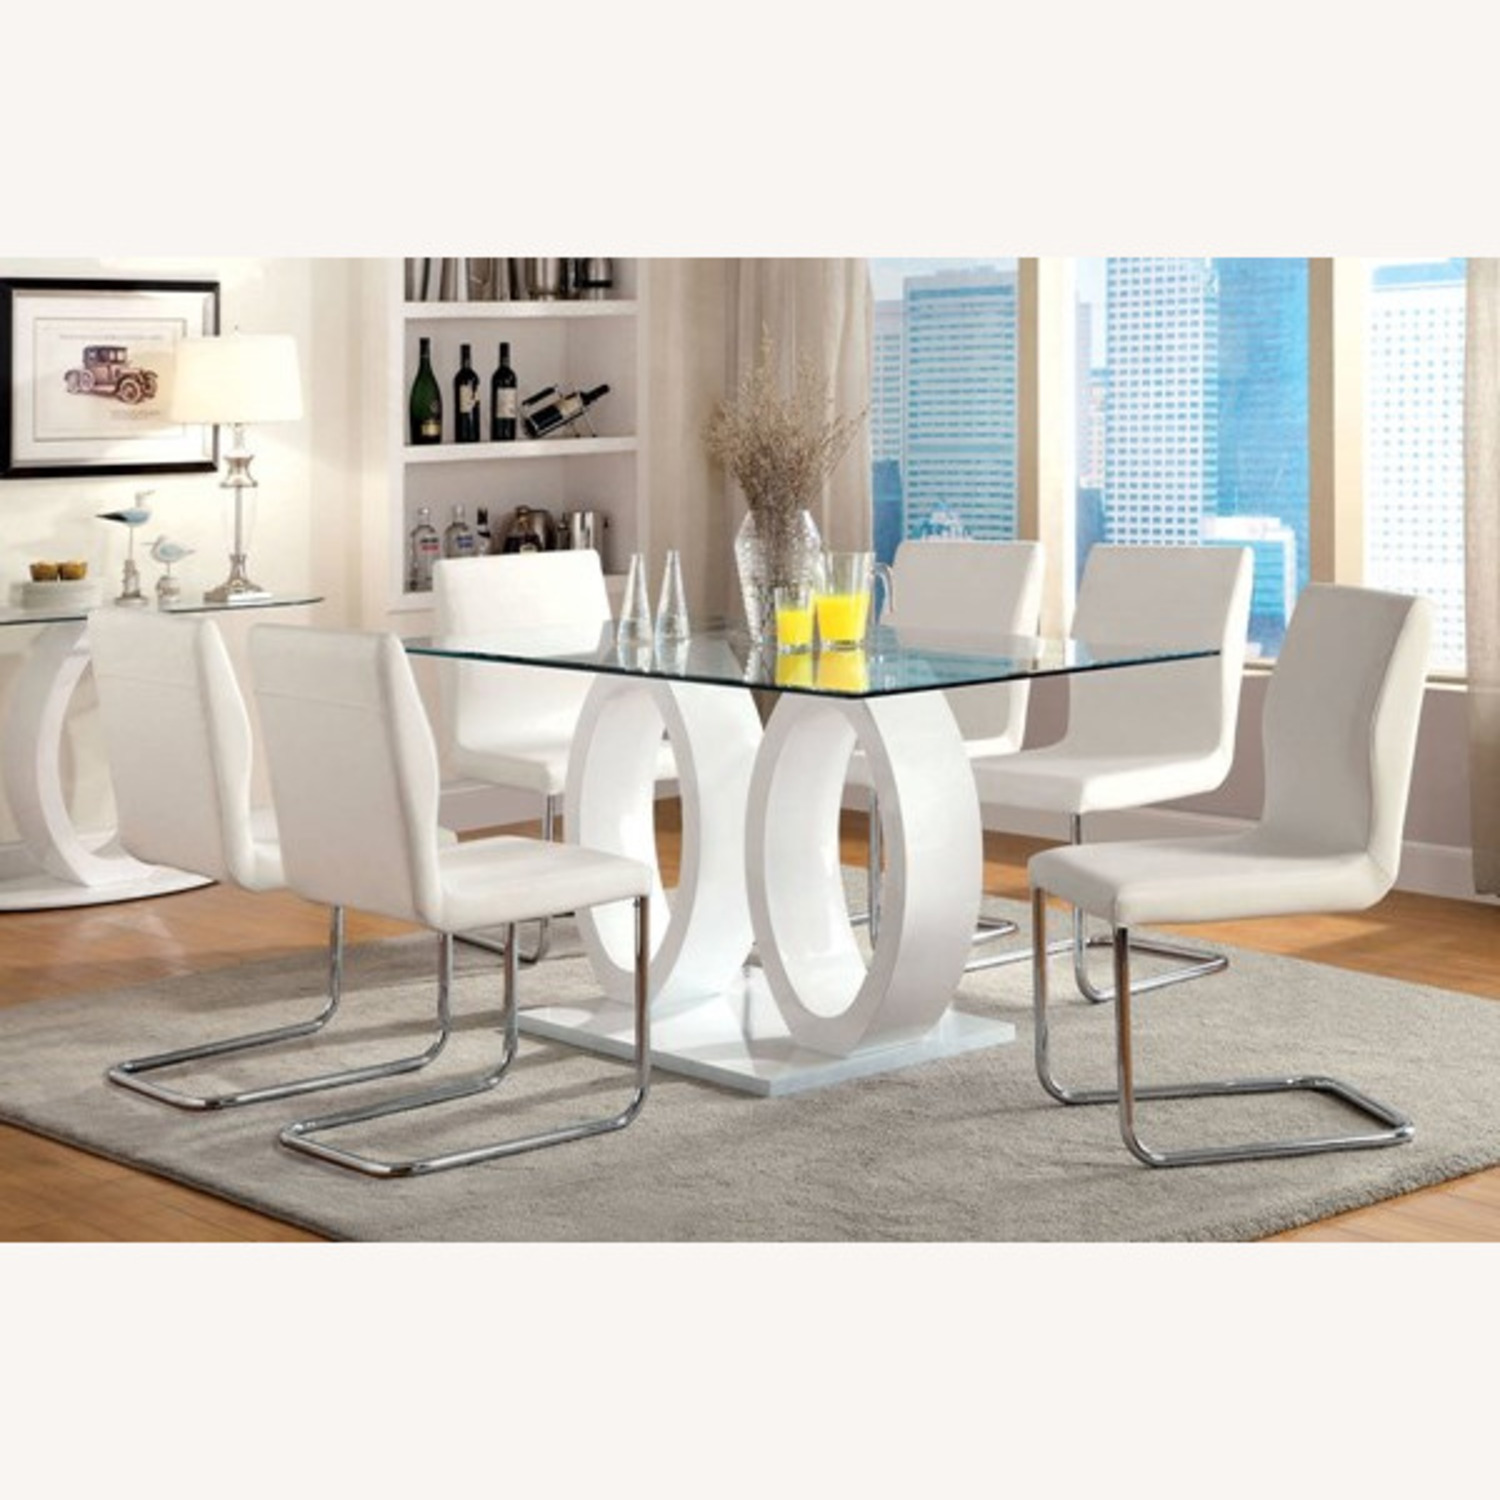 Modern Style Dining Table - image-1